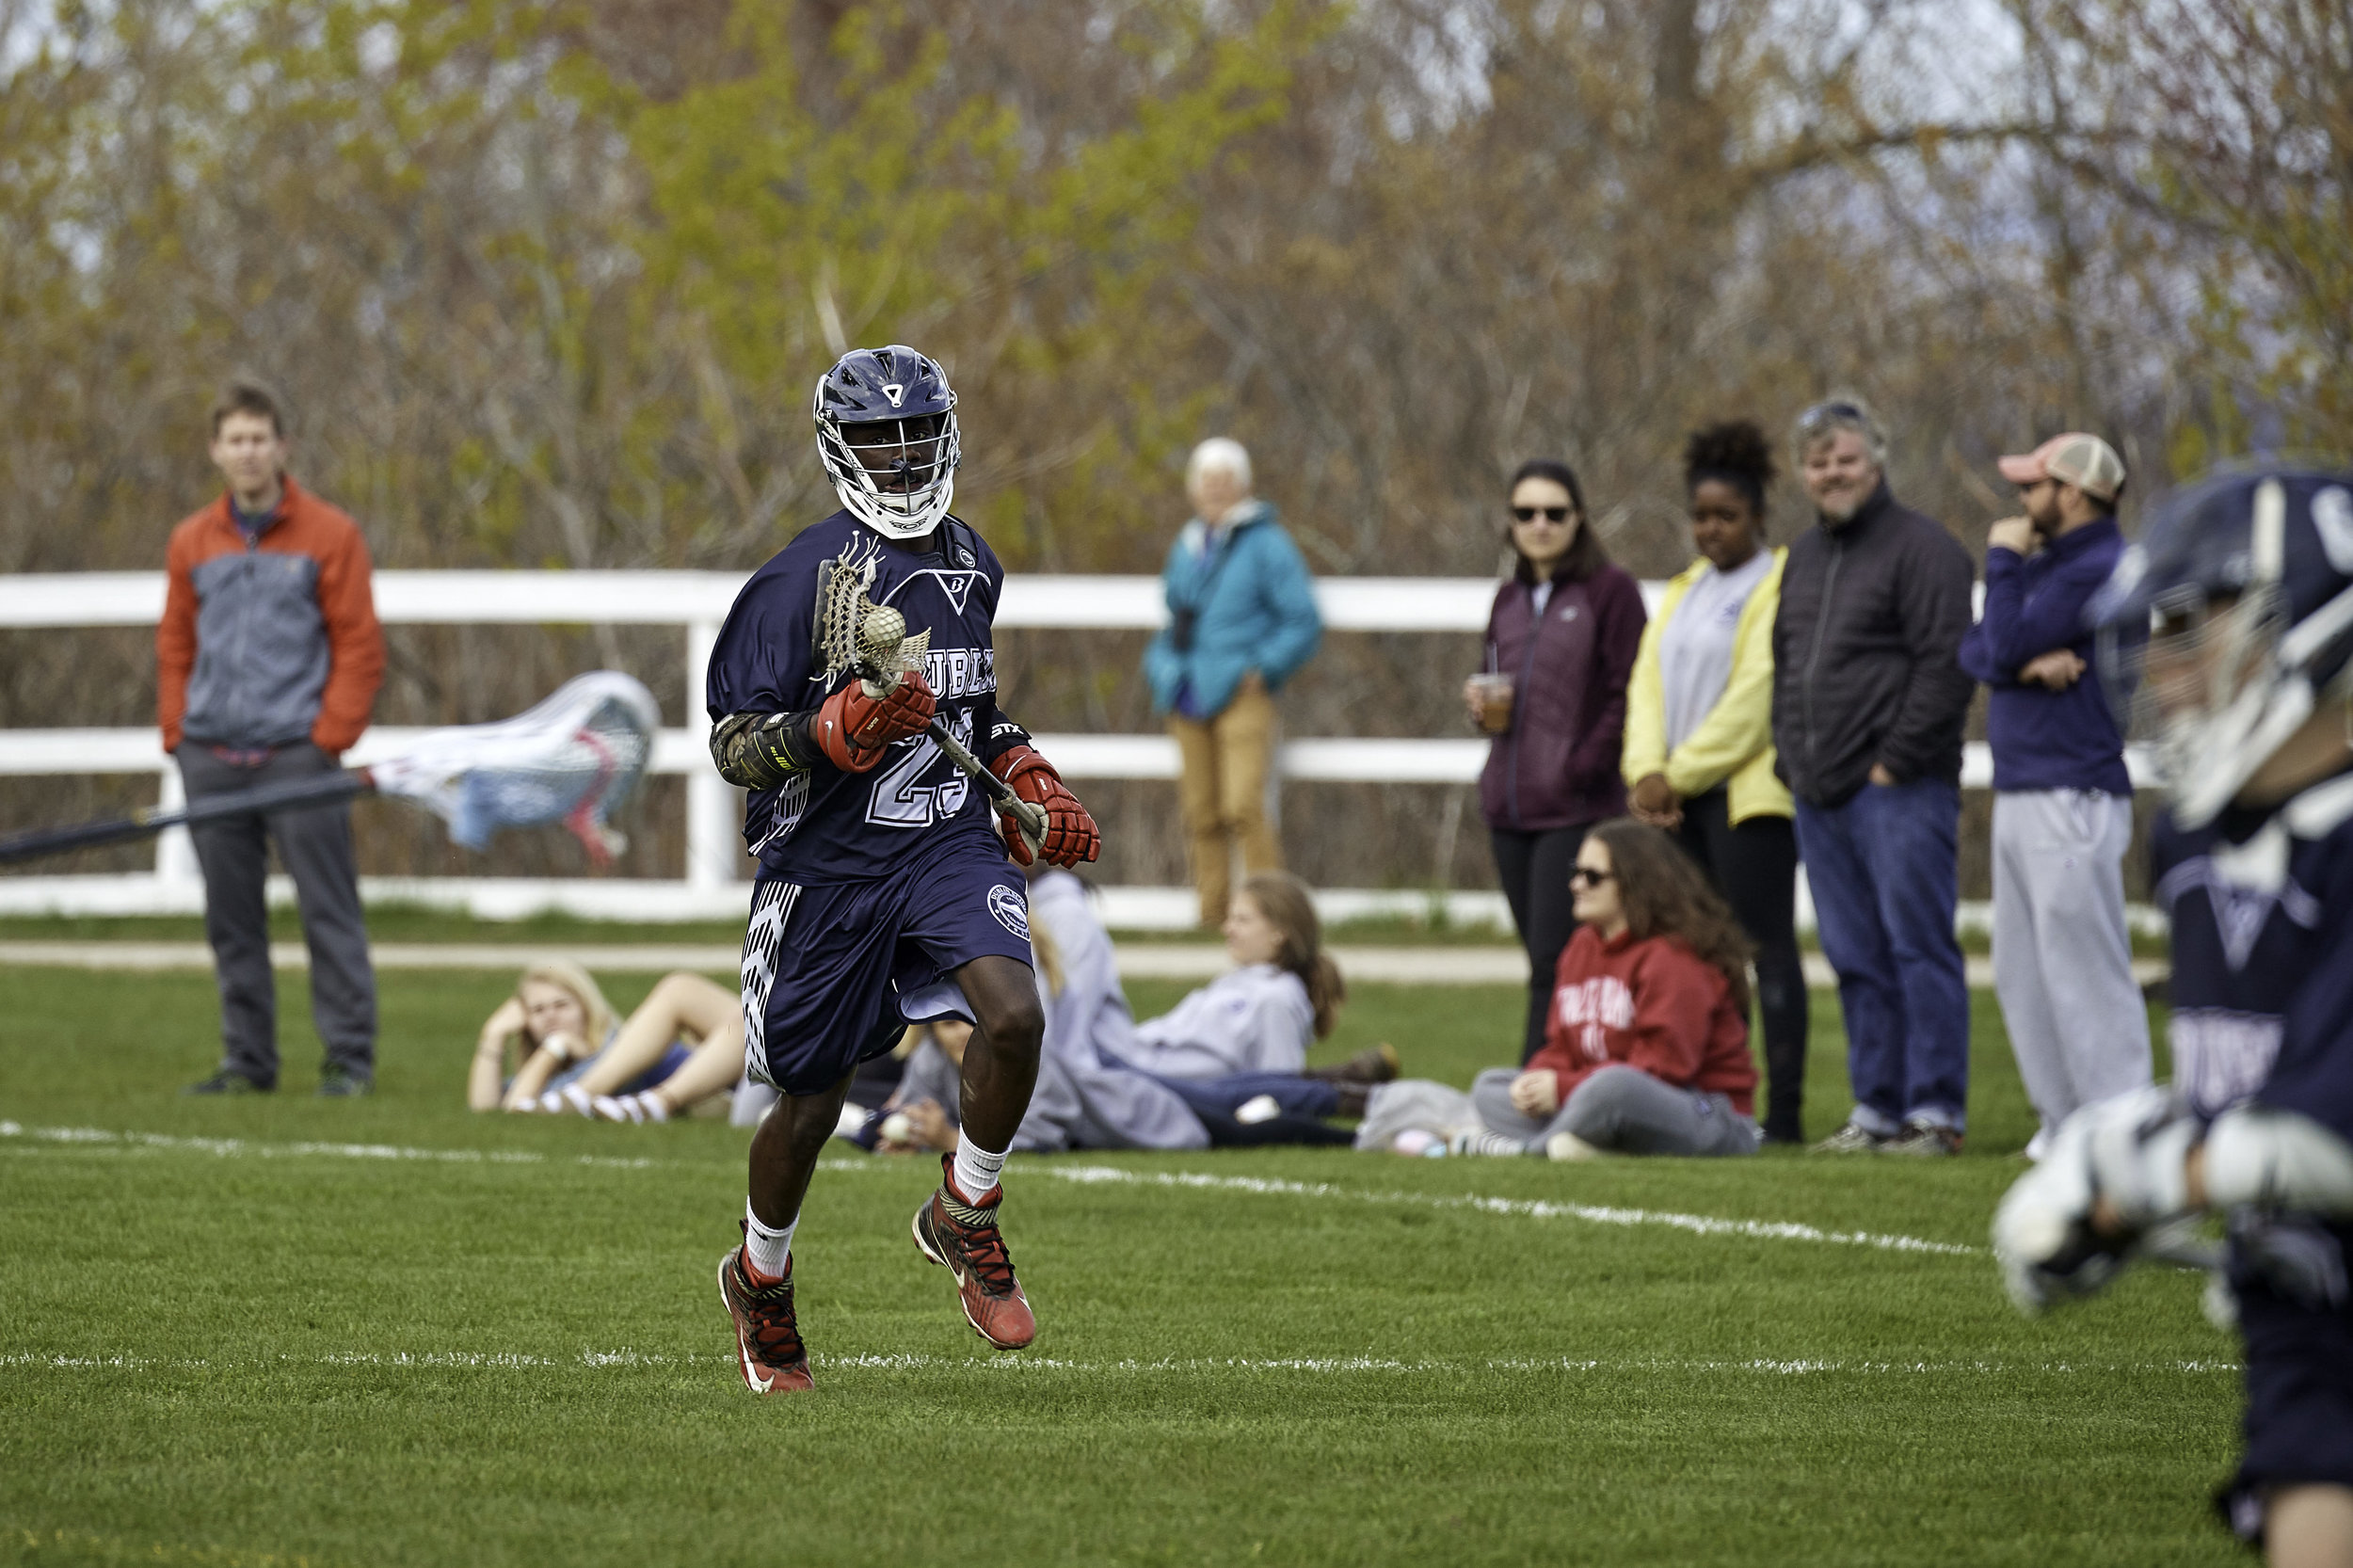 Boys Lax vs Northfield Mount Hermon JV - May 15 2019 - 0033.jpg